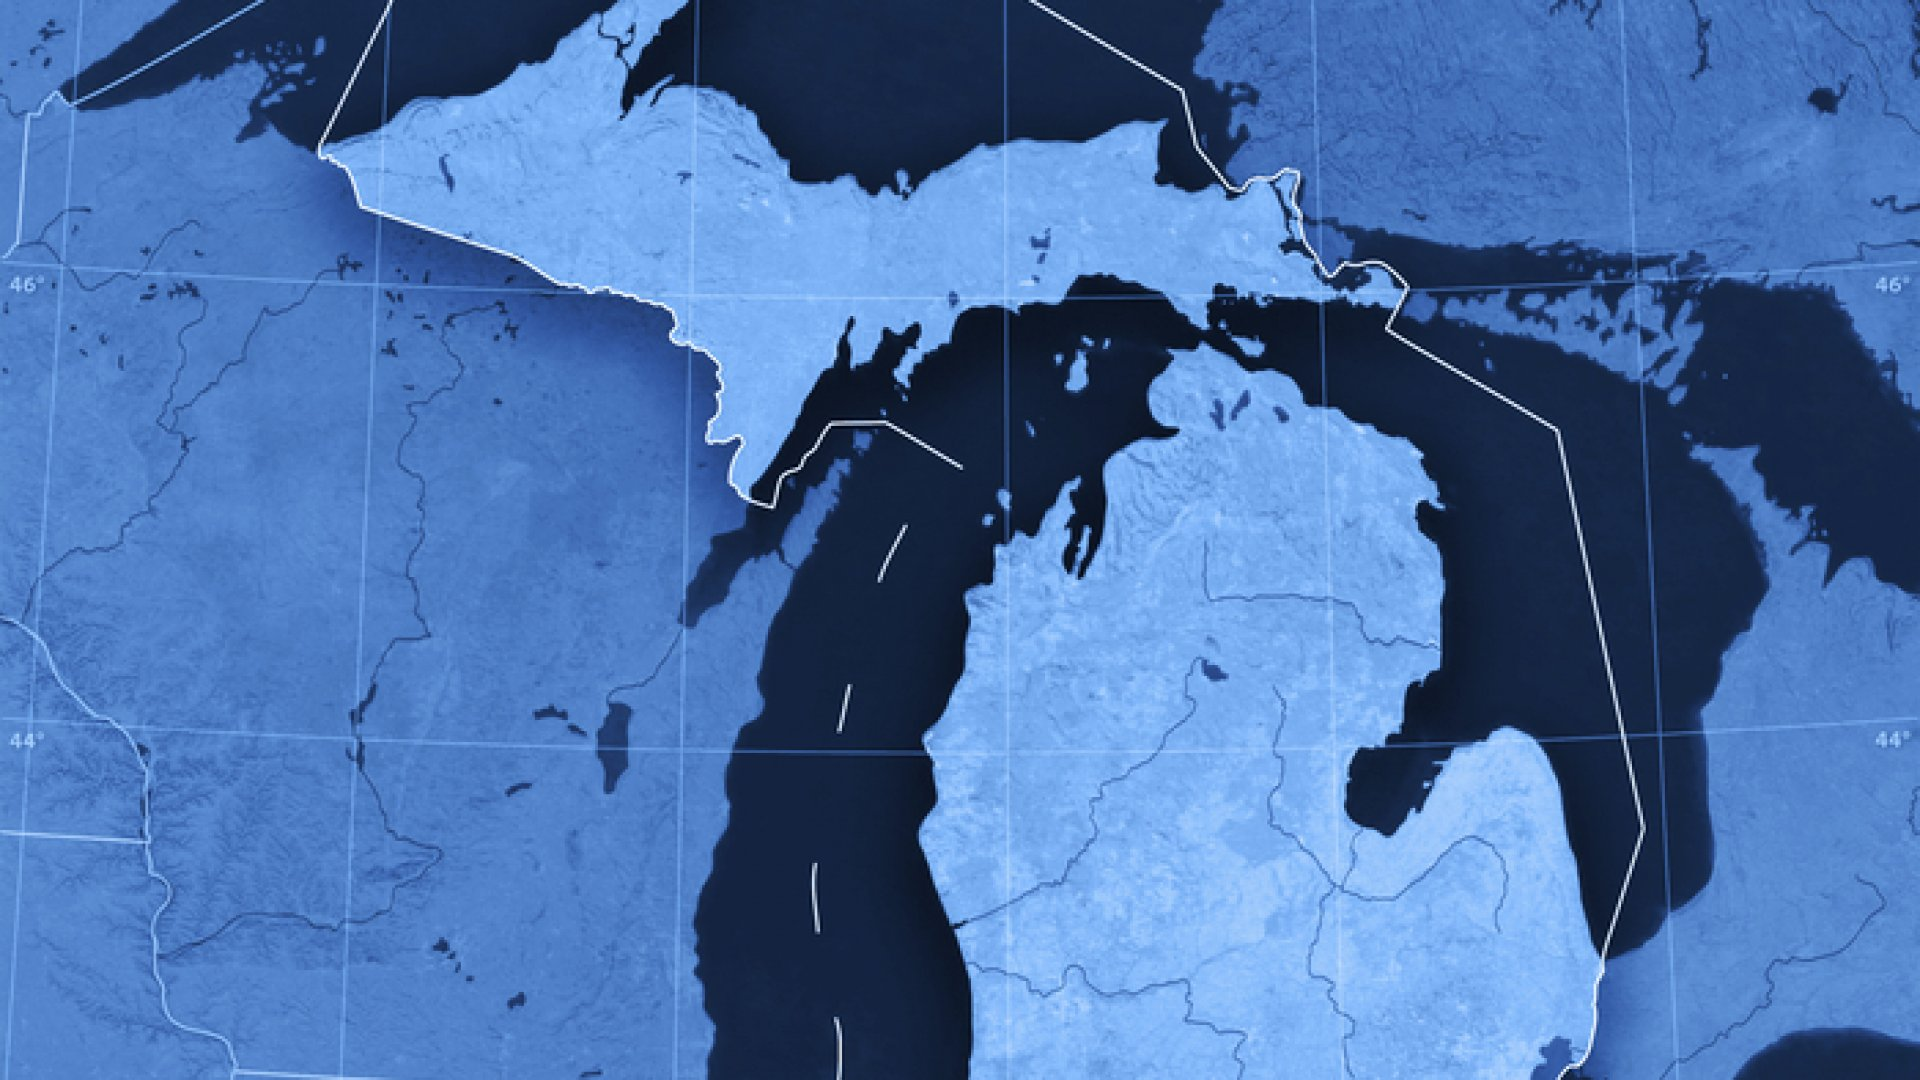 Michigan Means Growth: Moving Beyond Borders